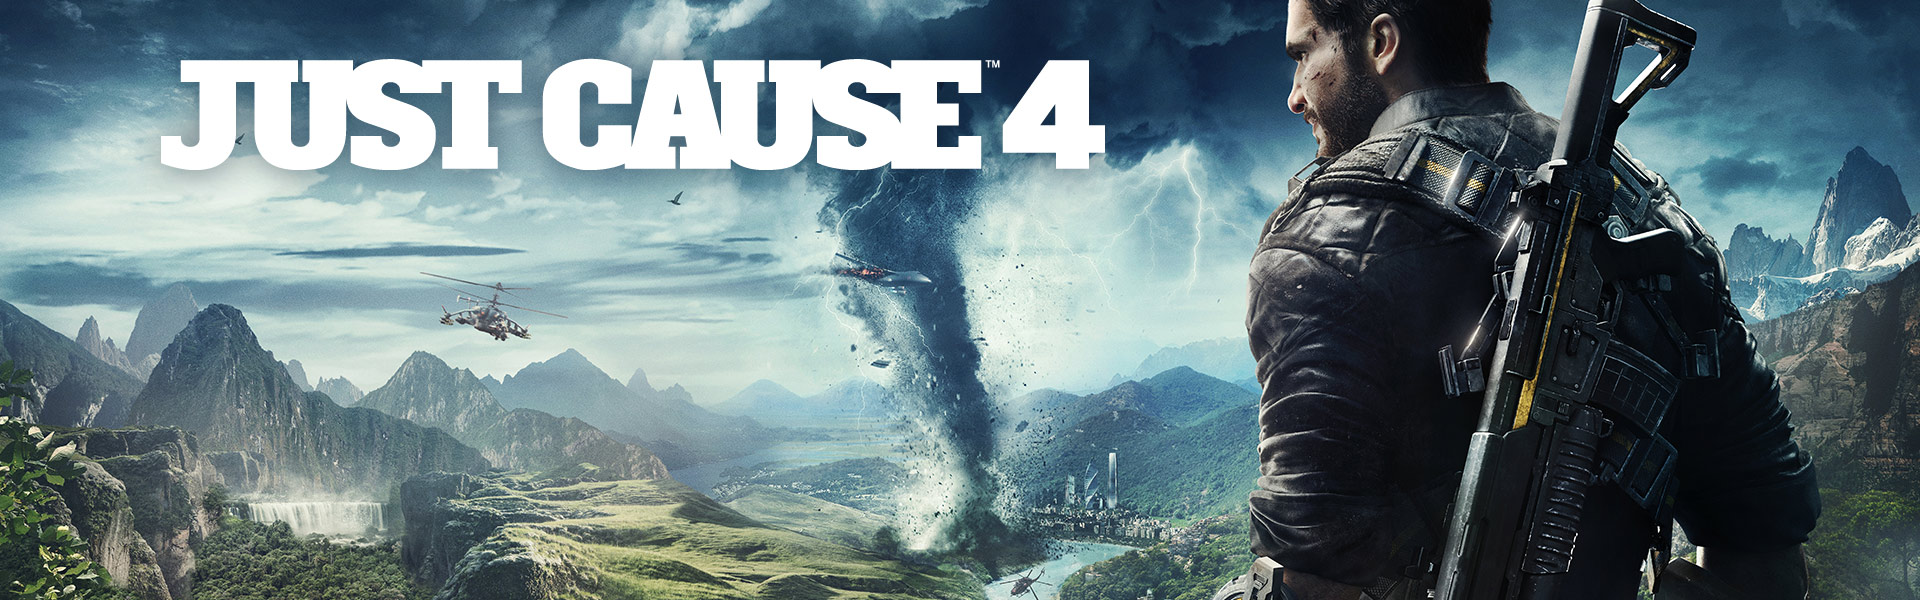 Just Cause 4 for Xbox One | Xbox